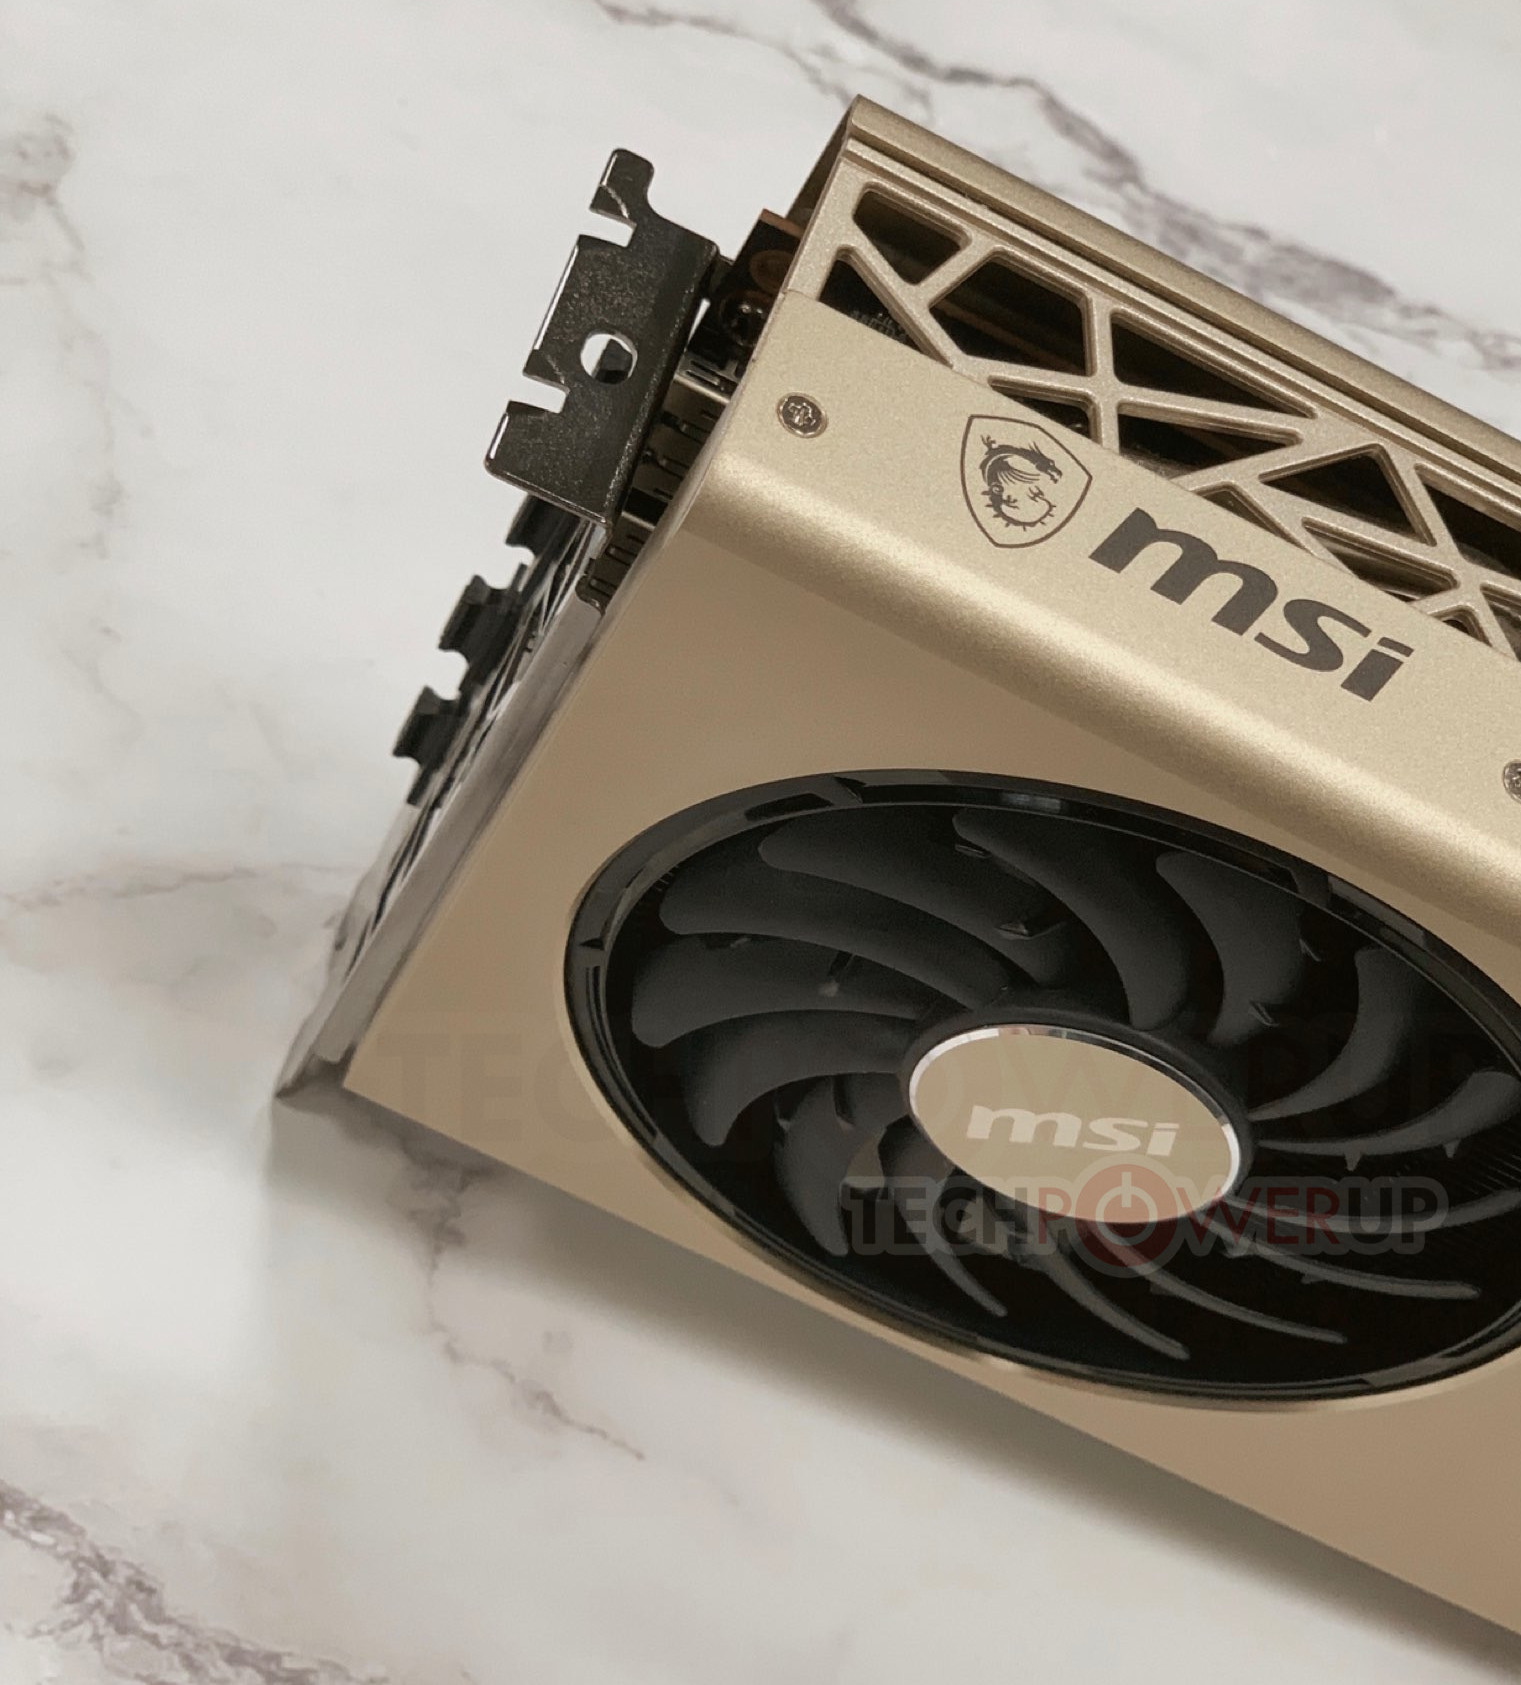 MSI Radeon RX 5700 XT EVOKE Graphics Card Teased | TechPowerUp